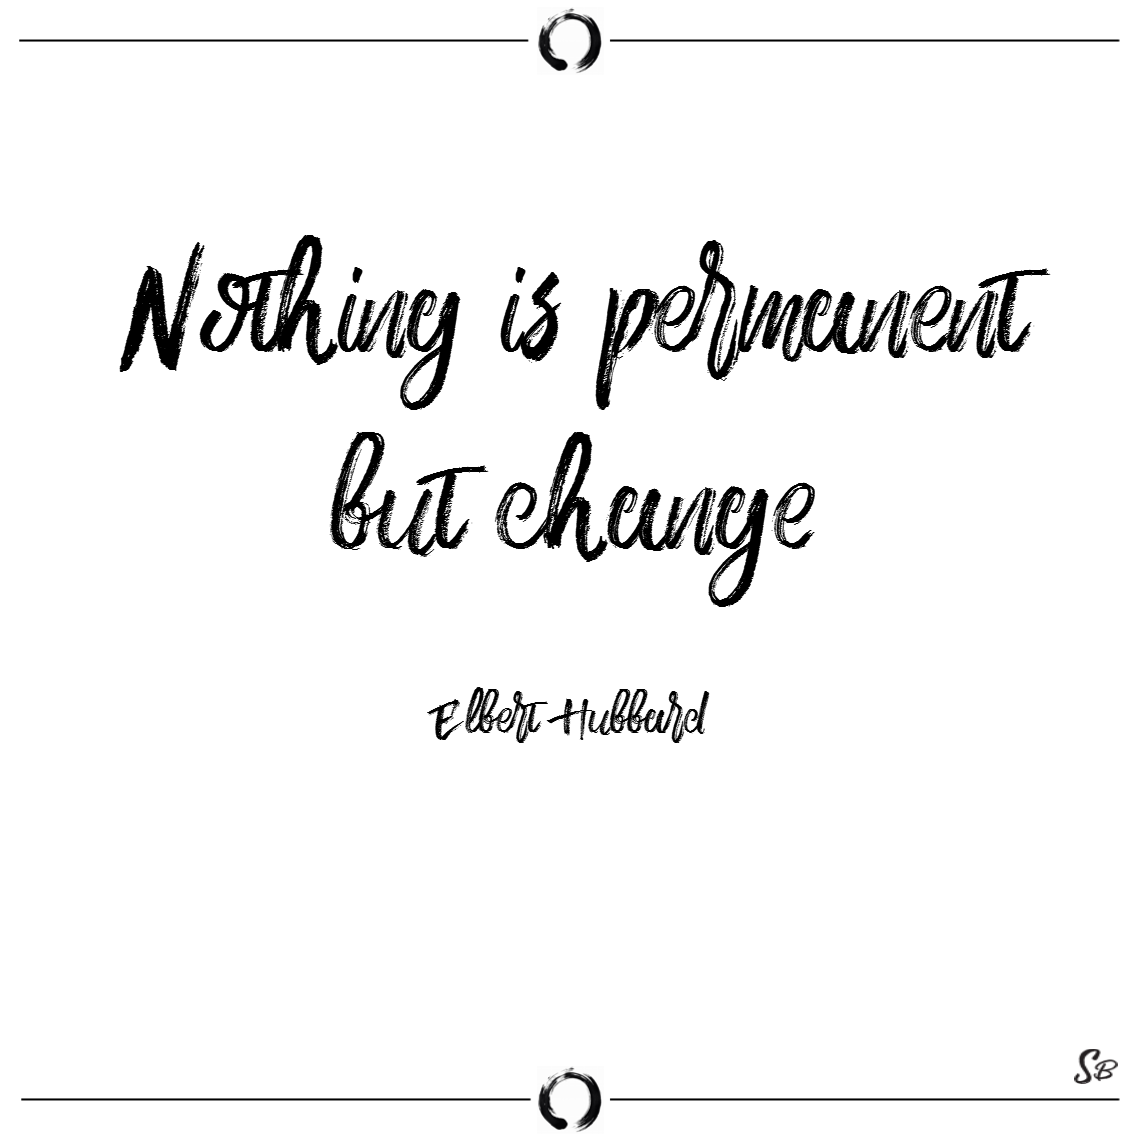 Quotes On Change: 31 Change Quotes That Will Shift Your Perspective